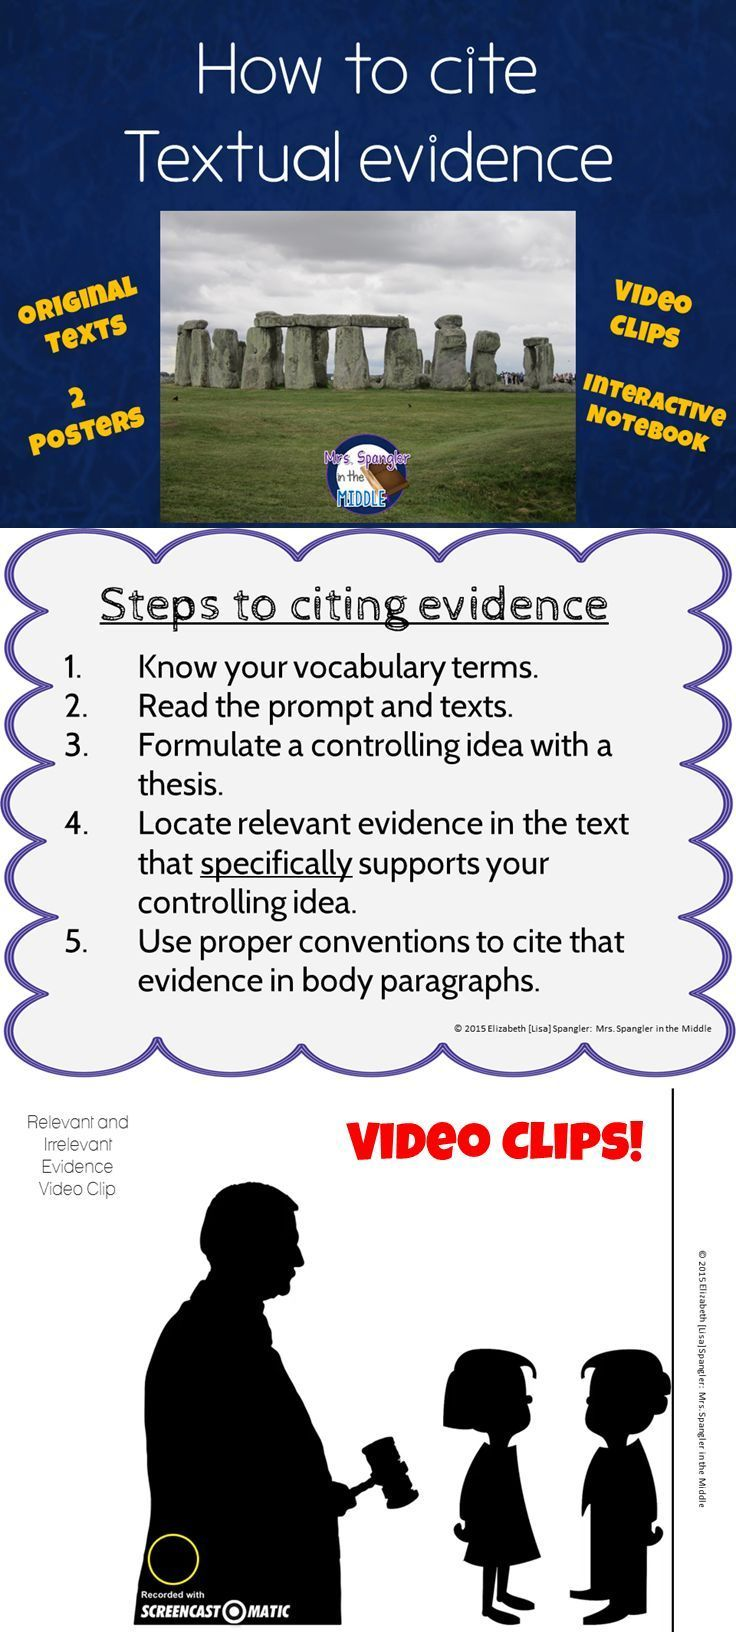 Teach students how to cite textual evidence in 5 steps with interactive notebook foldables, video clips and more! $